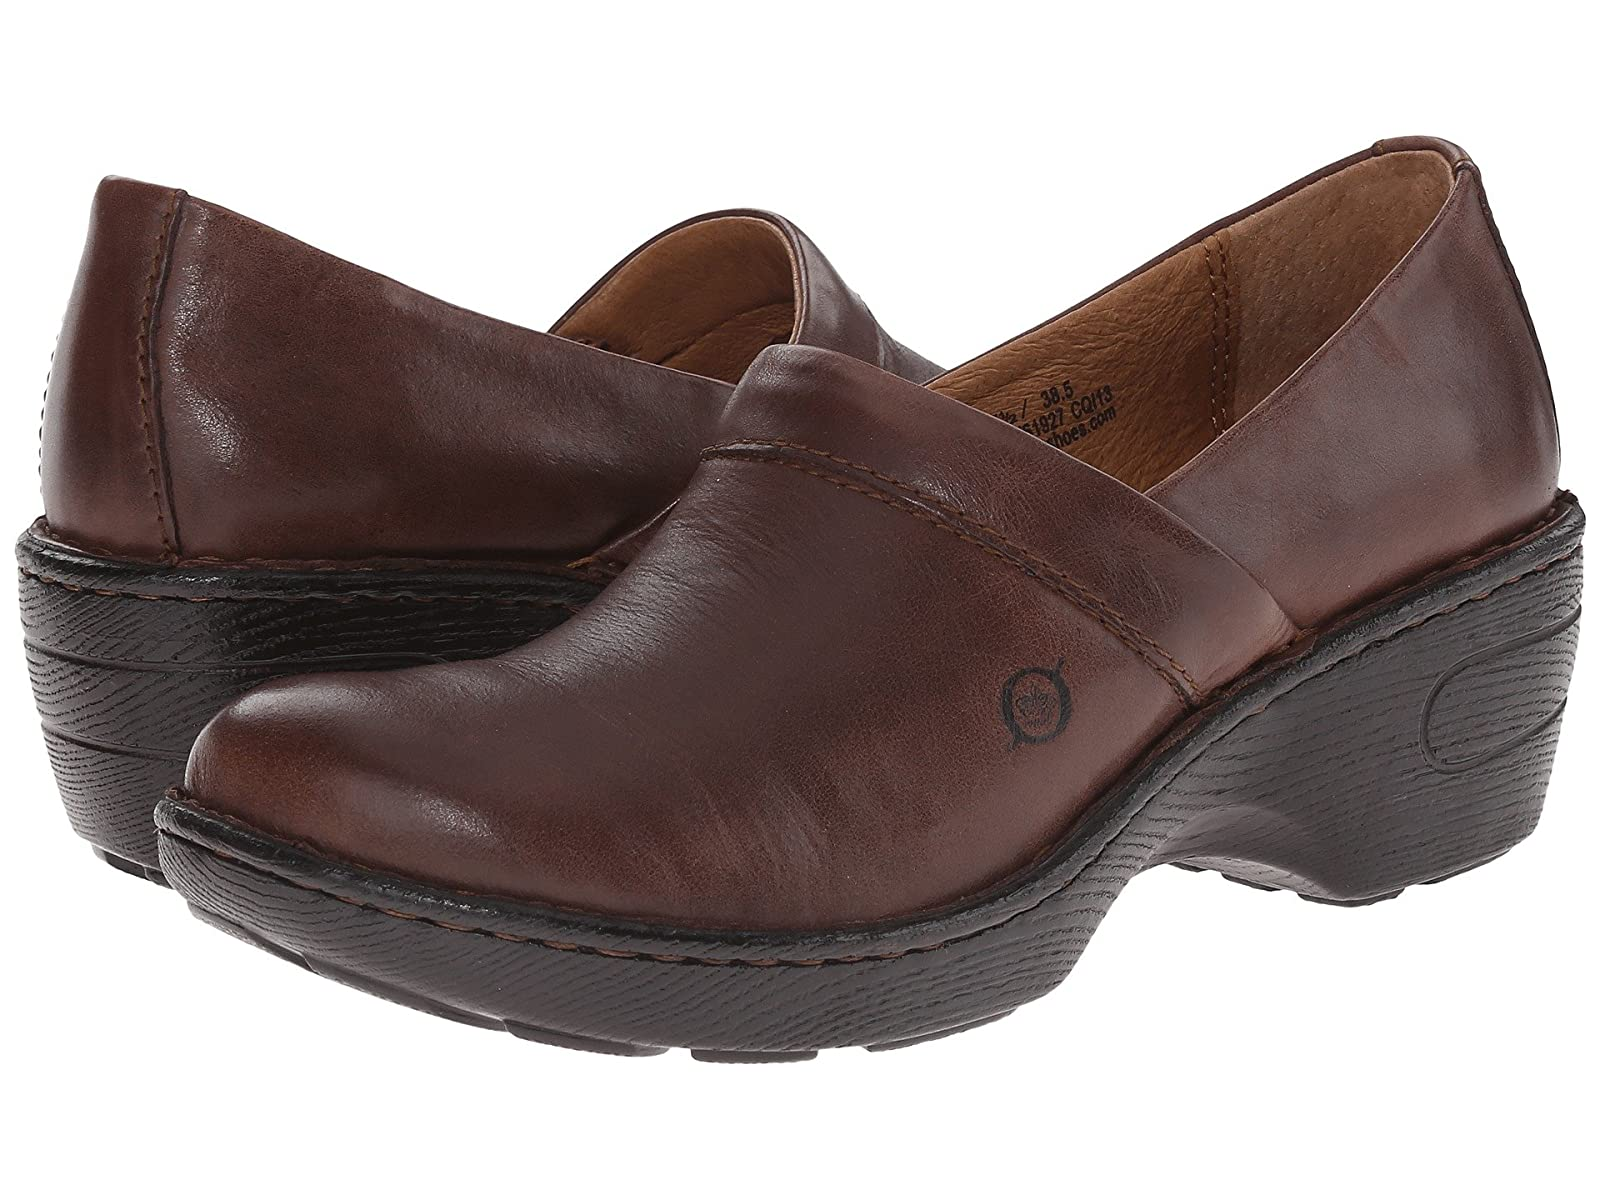 Born Toby IIEconomical and quality shoes